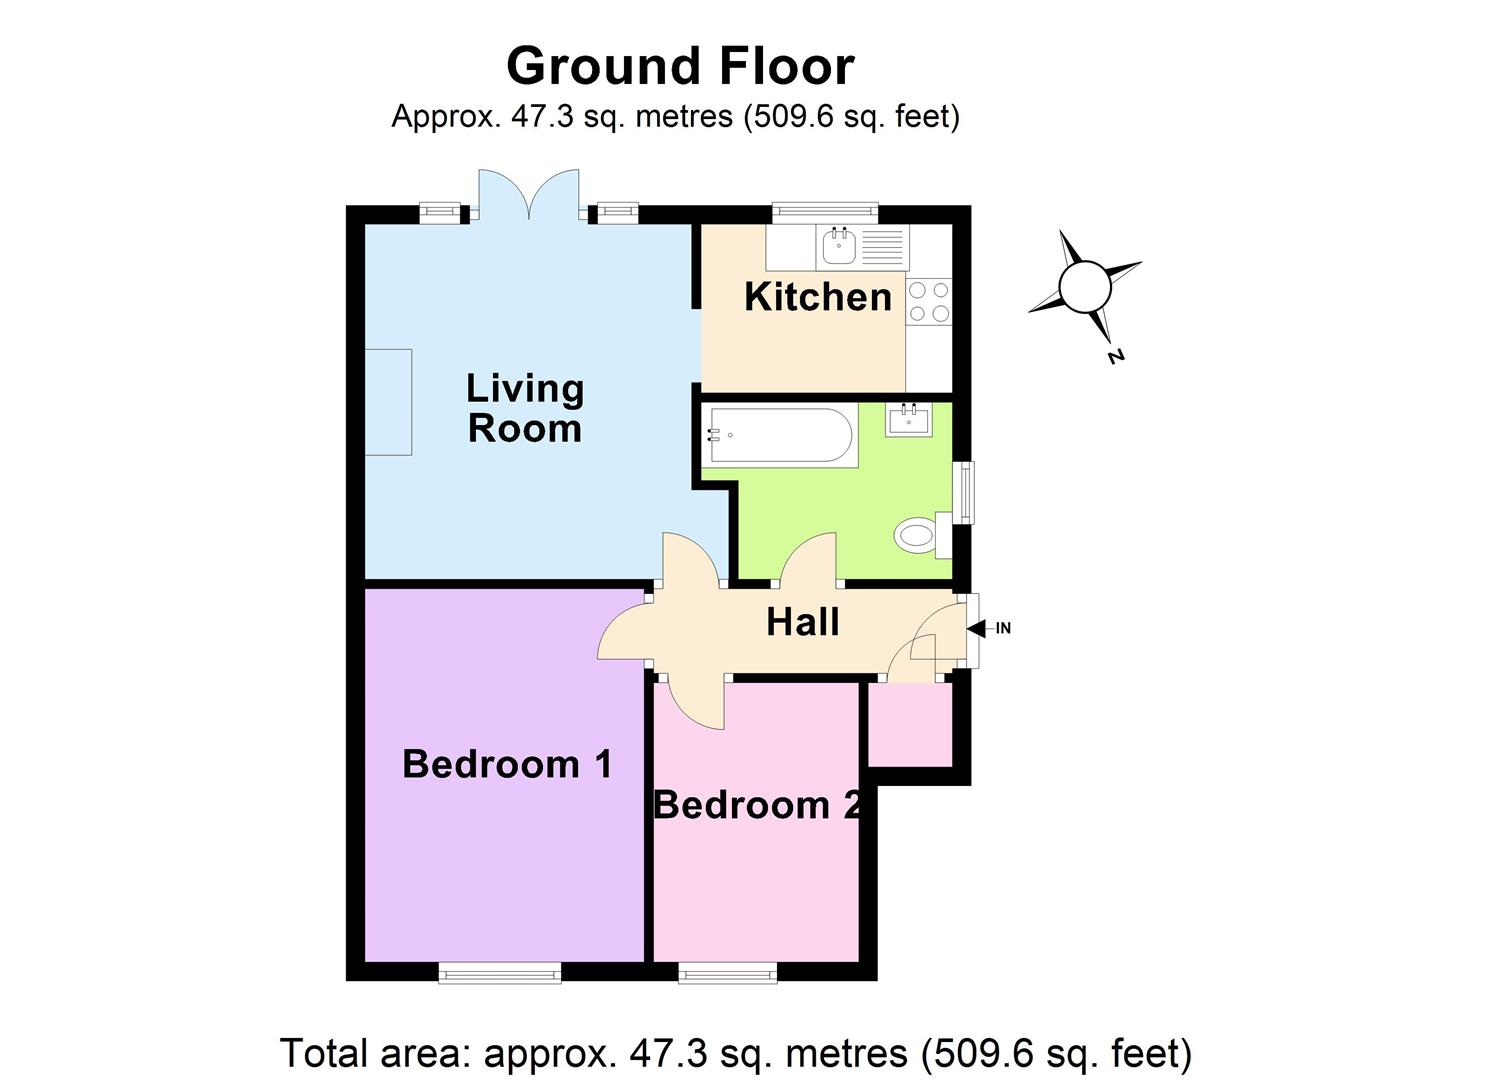 51 Croft Close, Chislehurst Floor Plan.jpg